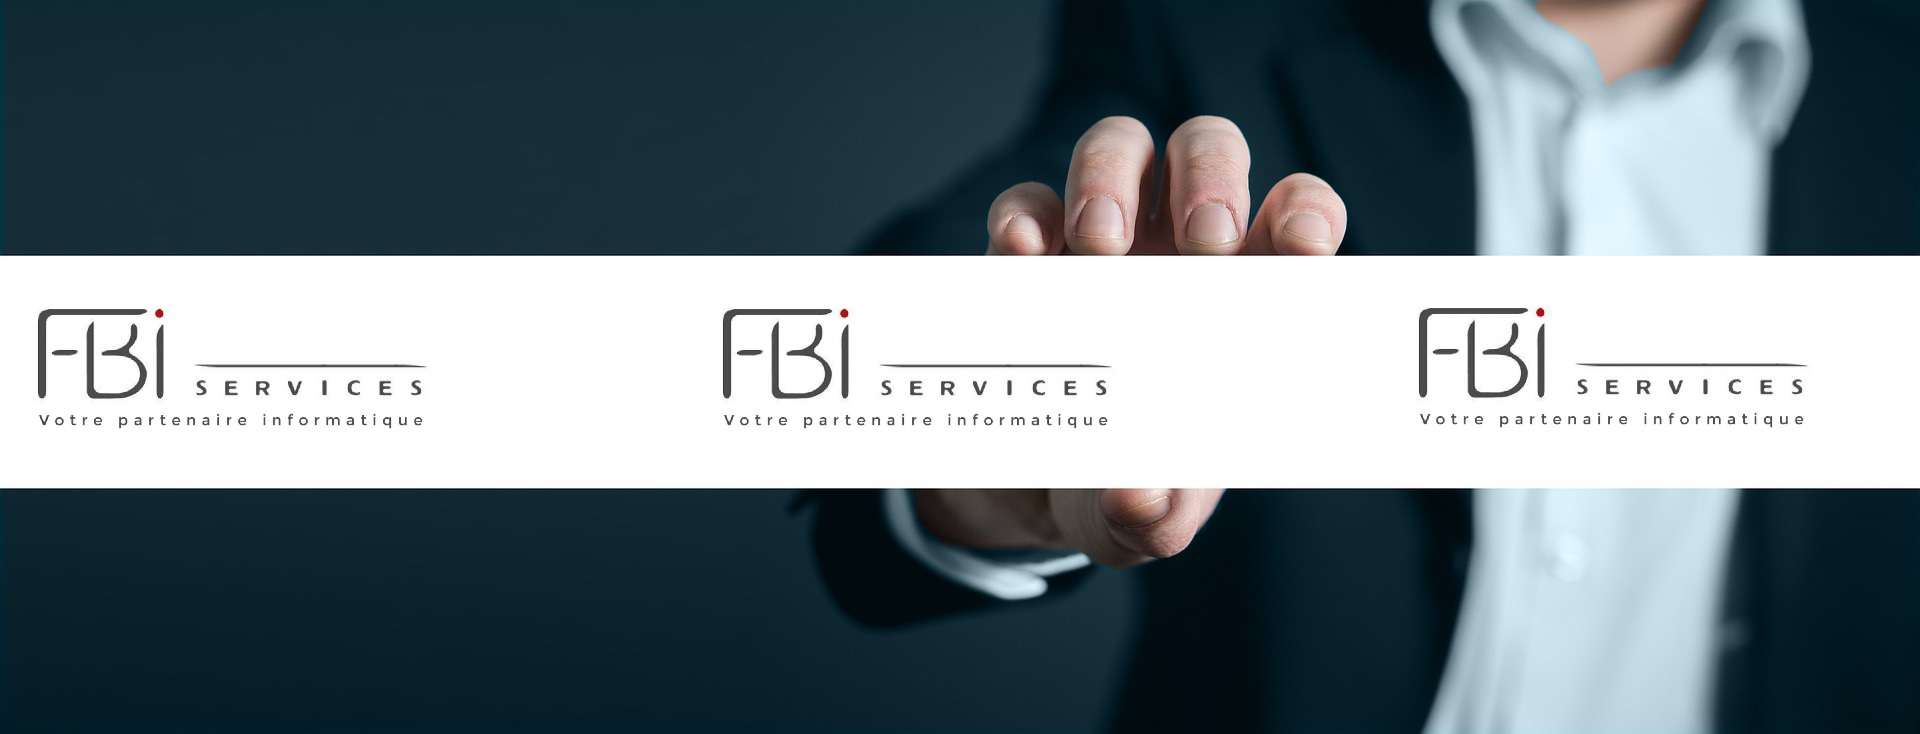 Dépannage-informatique-paris-FBI